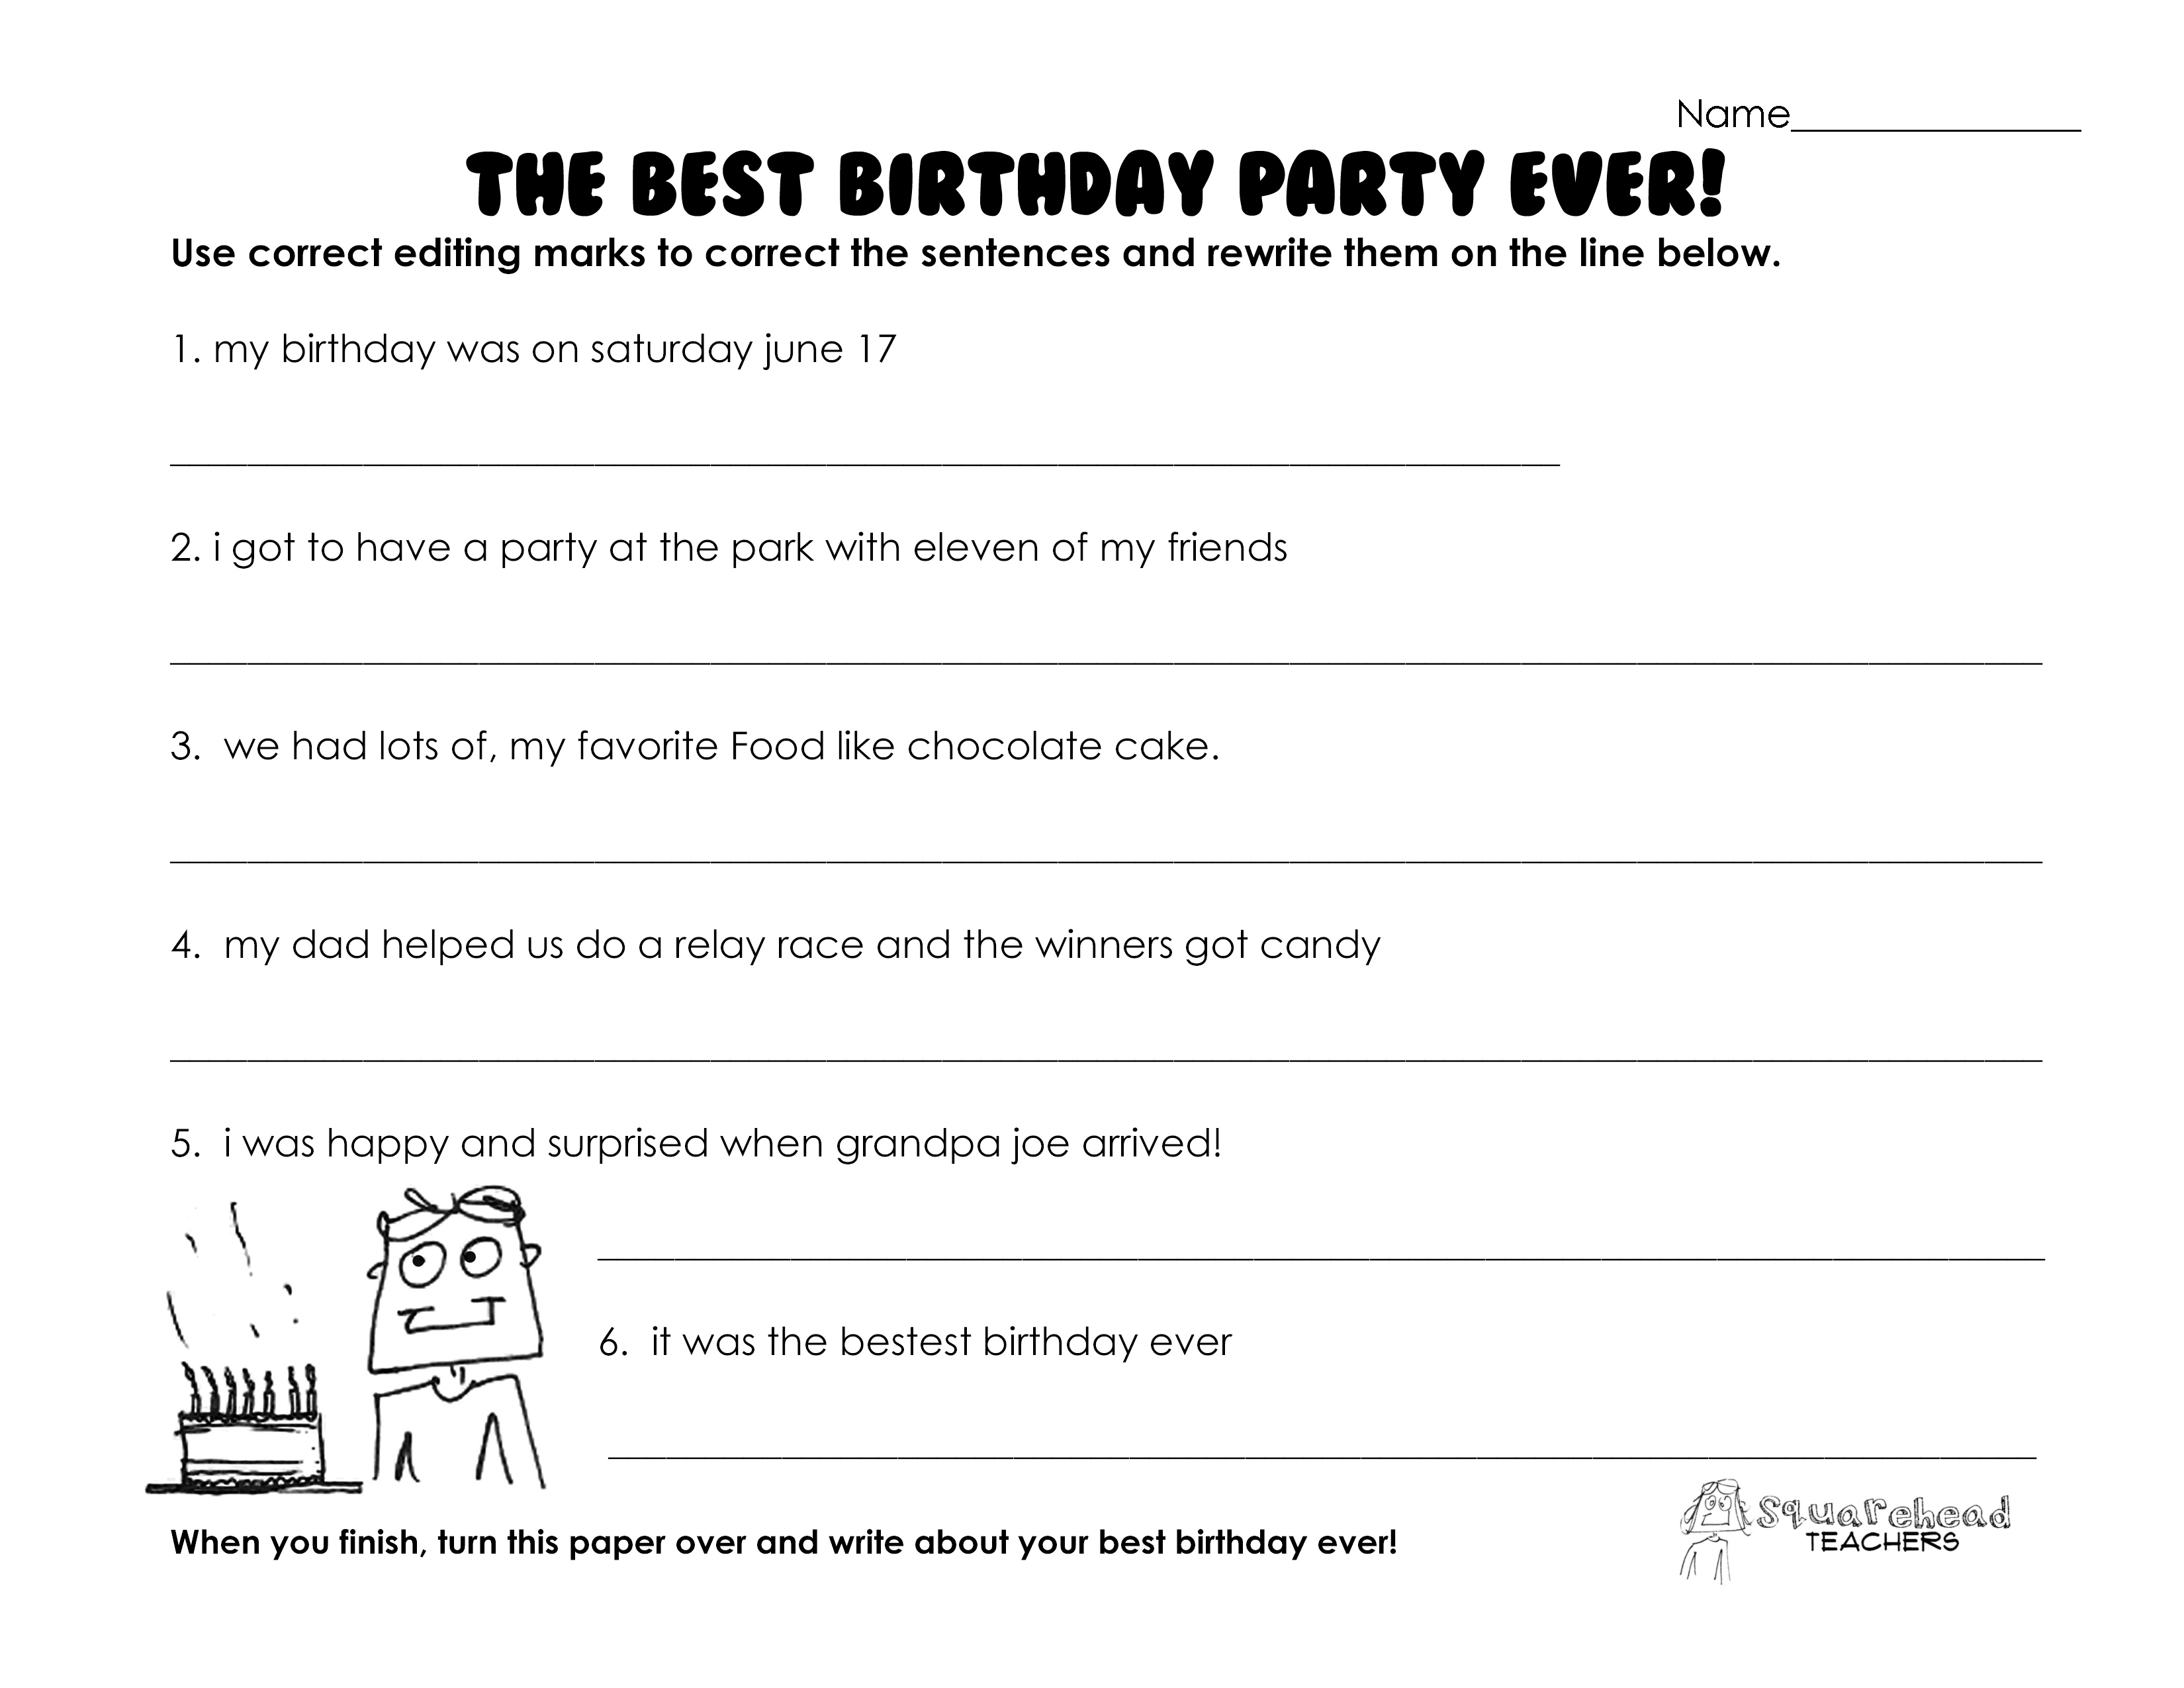 Best Birthday Party Ever Grammar Practice Worksheet